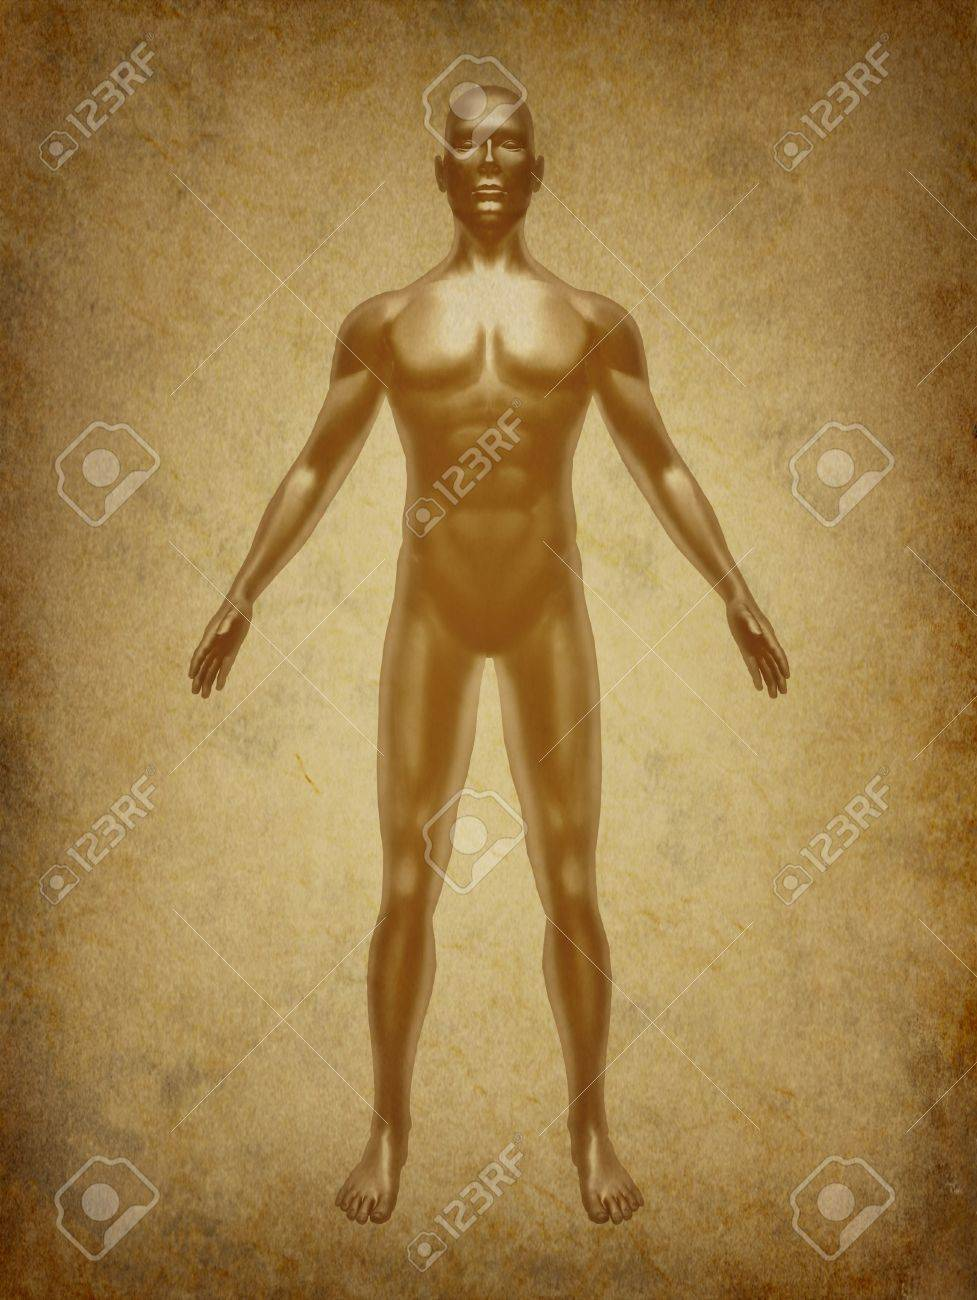 Human body medical x-ray pose chart joints muscles symbol ancient grunge old medical parchment Stock Photo - 11718570